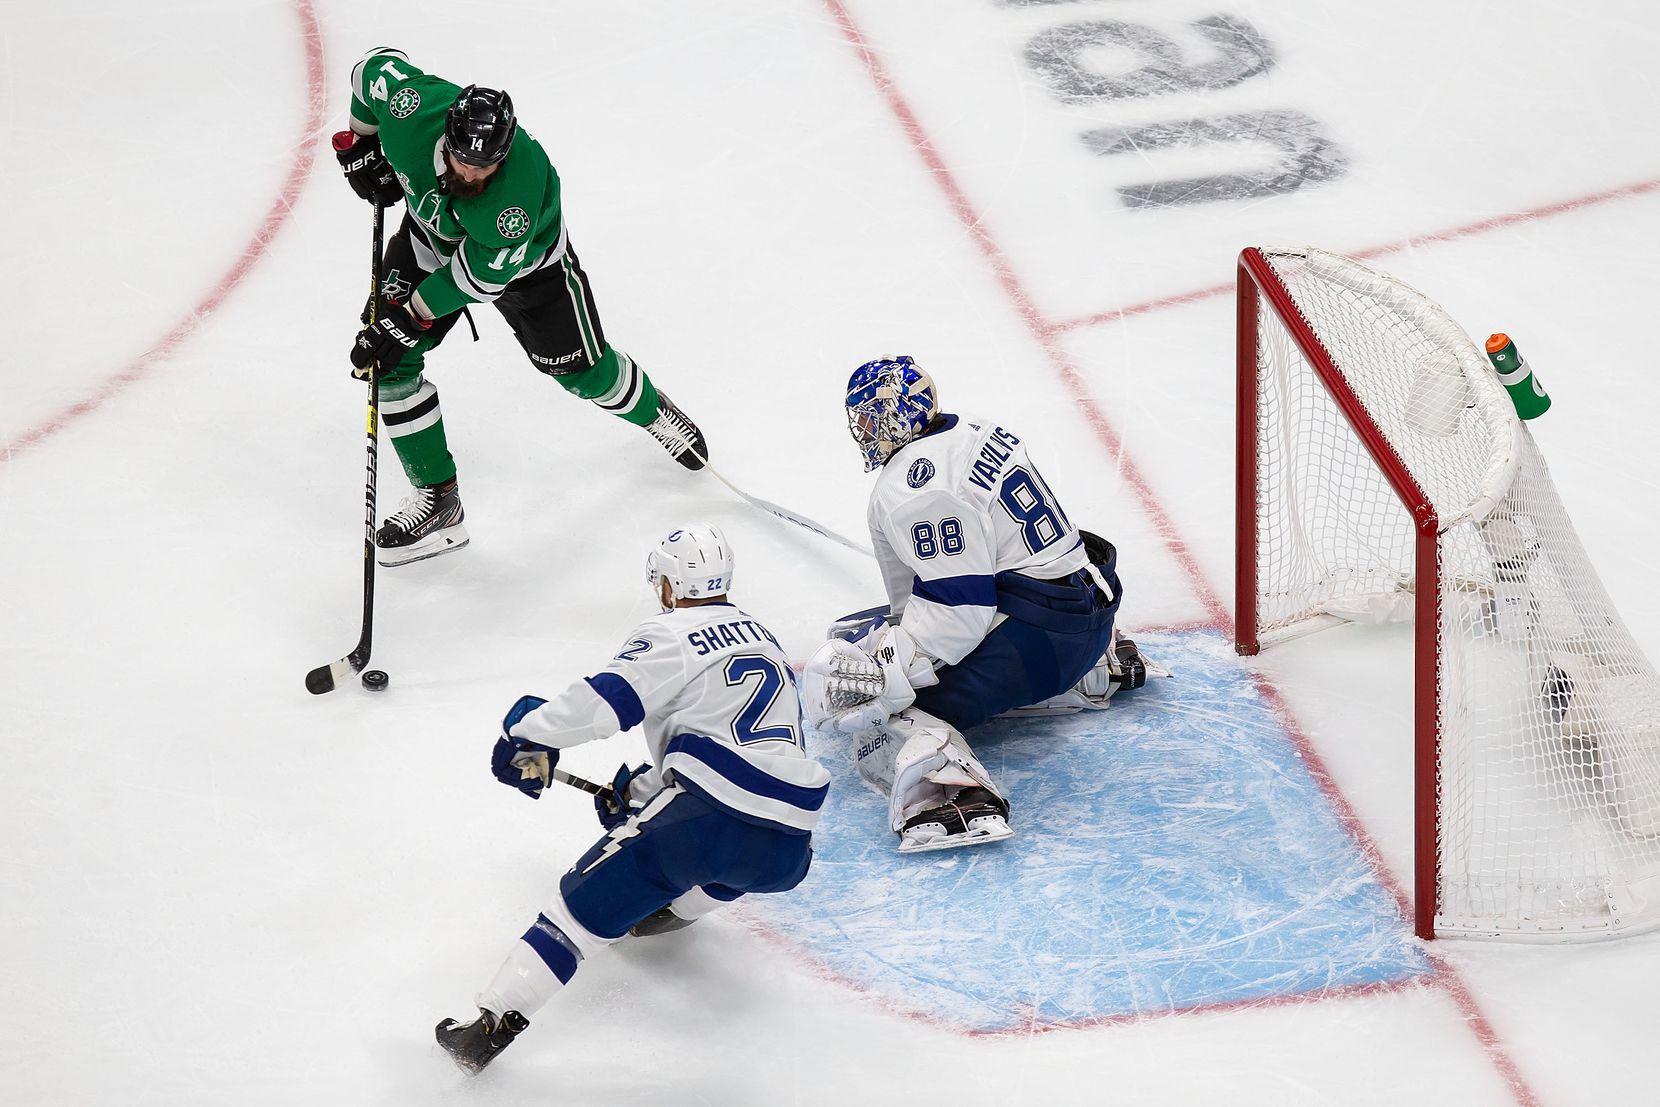 Jamie Benn (14) of the Dallas Stars looks for a shot against goaltender Andrei Vasilevskiy (88) of the Tampa Bay Lightning during Game Three of the Stanley Cup Final at Rogers Place in Edmonton, Alberta, Canada on Wednesday, September 23, 2020. (Codie McLachlan/Special Contributor)